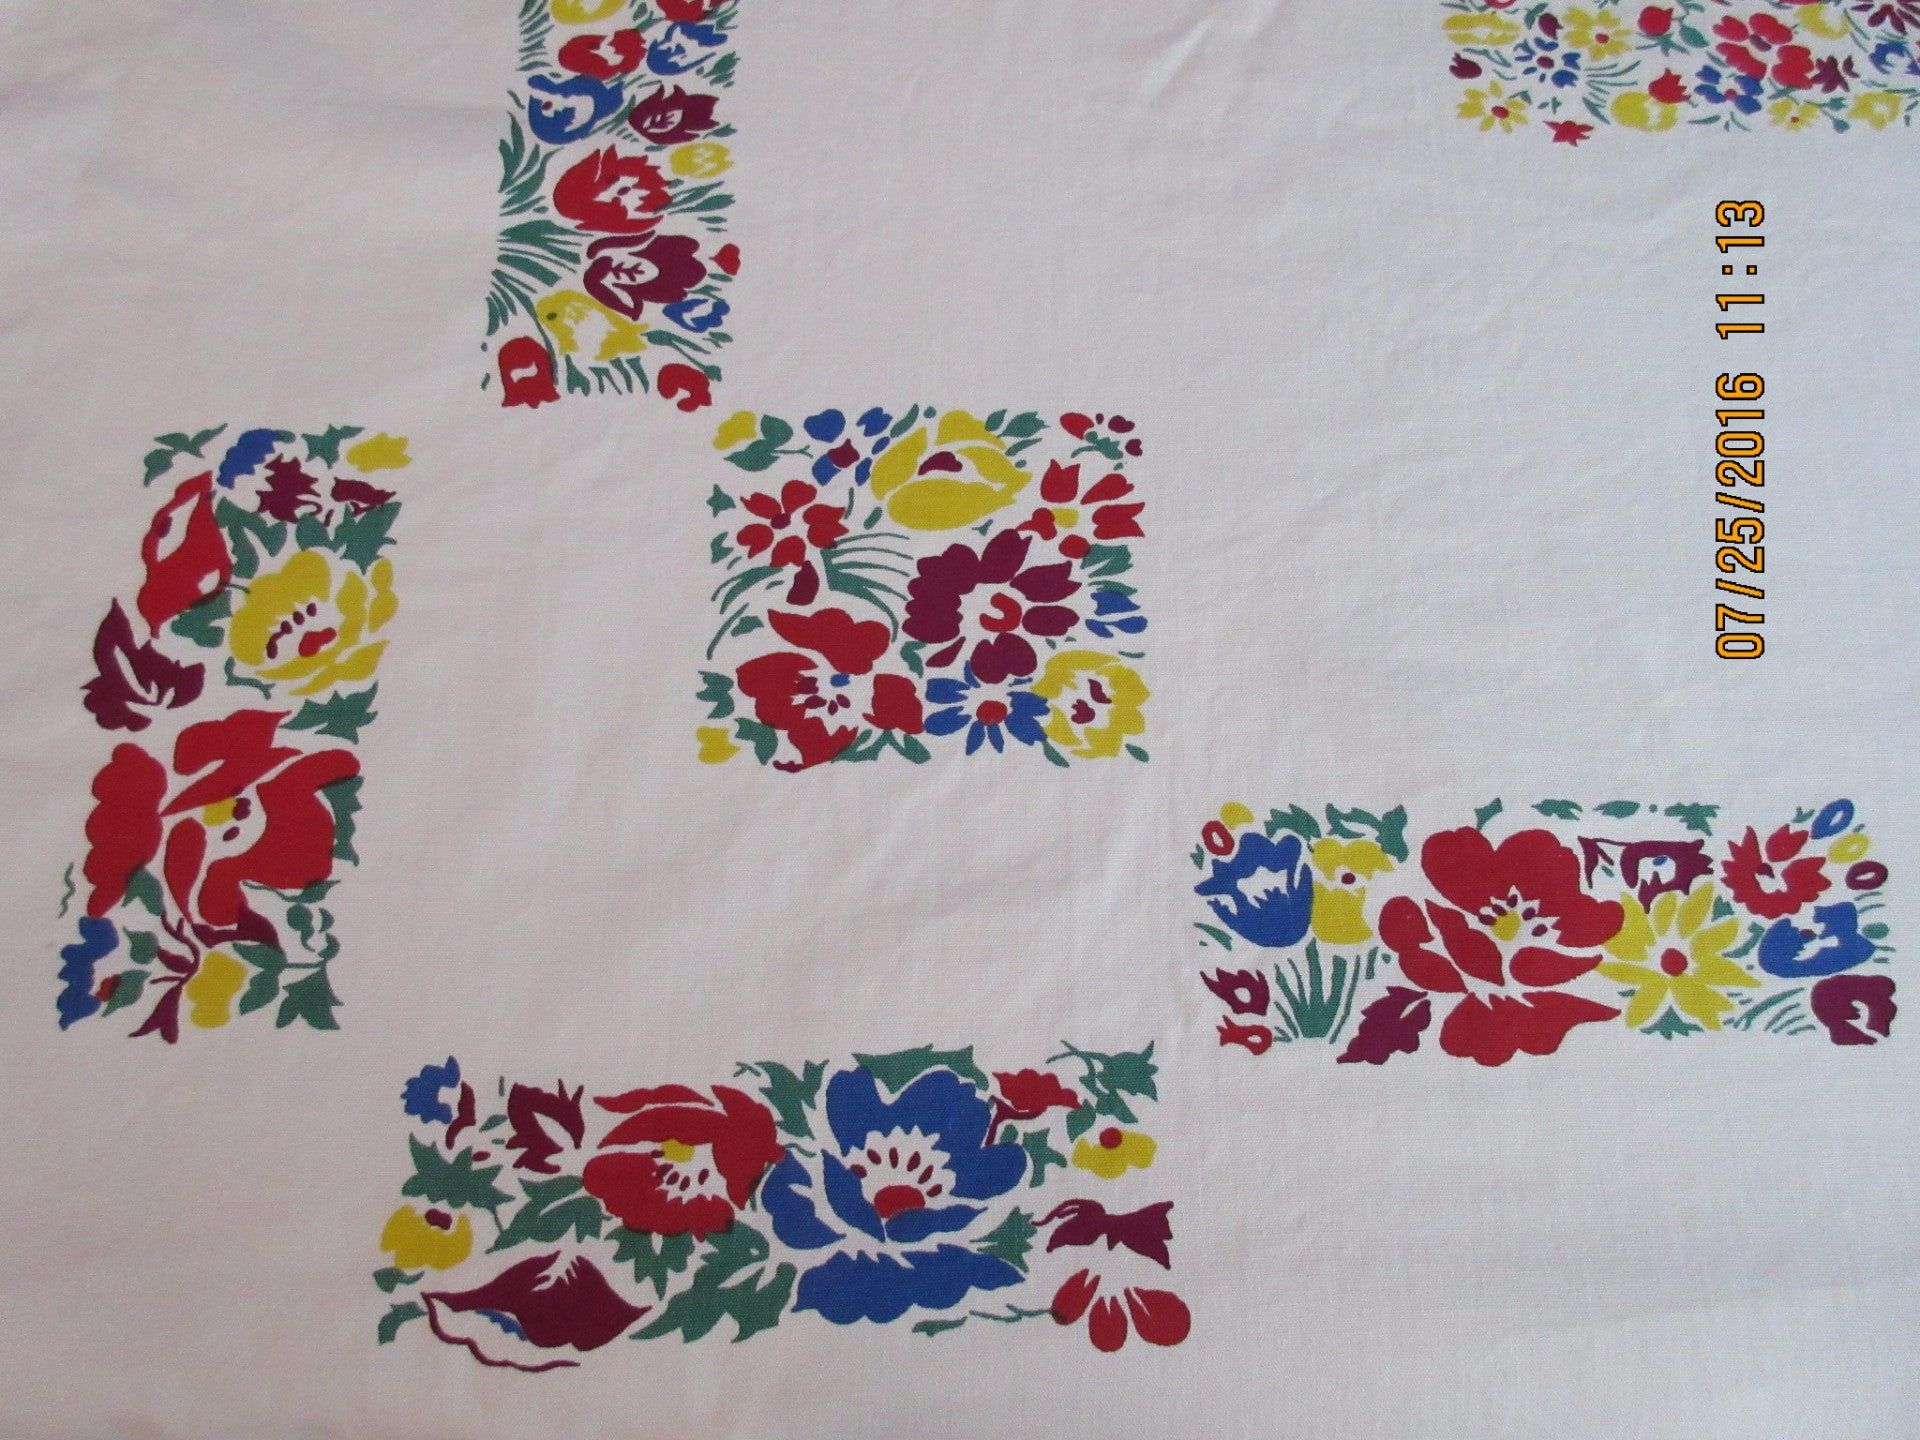 Primary Millefiori Poppies Floral NWOT Vintage Printed Tablecloth (52 X 47)